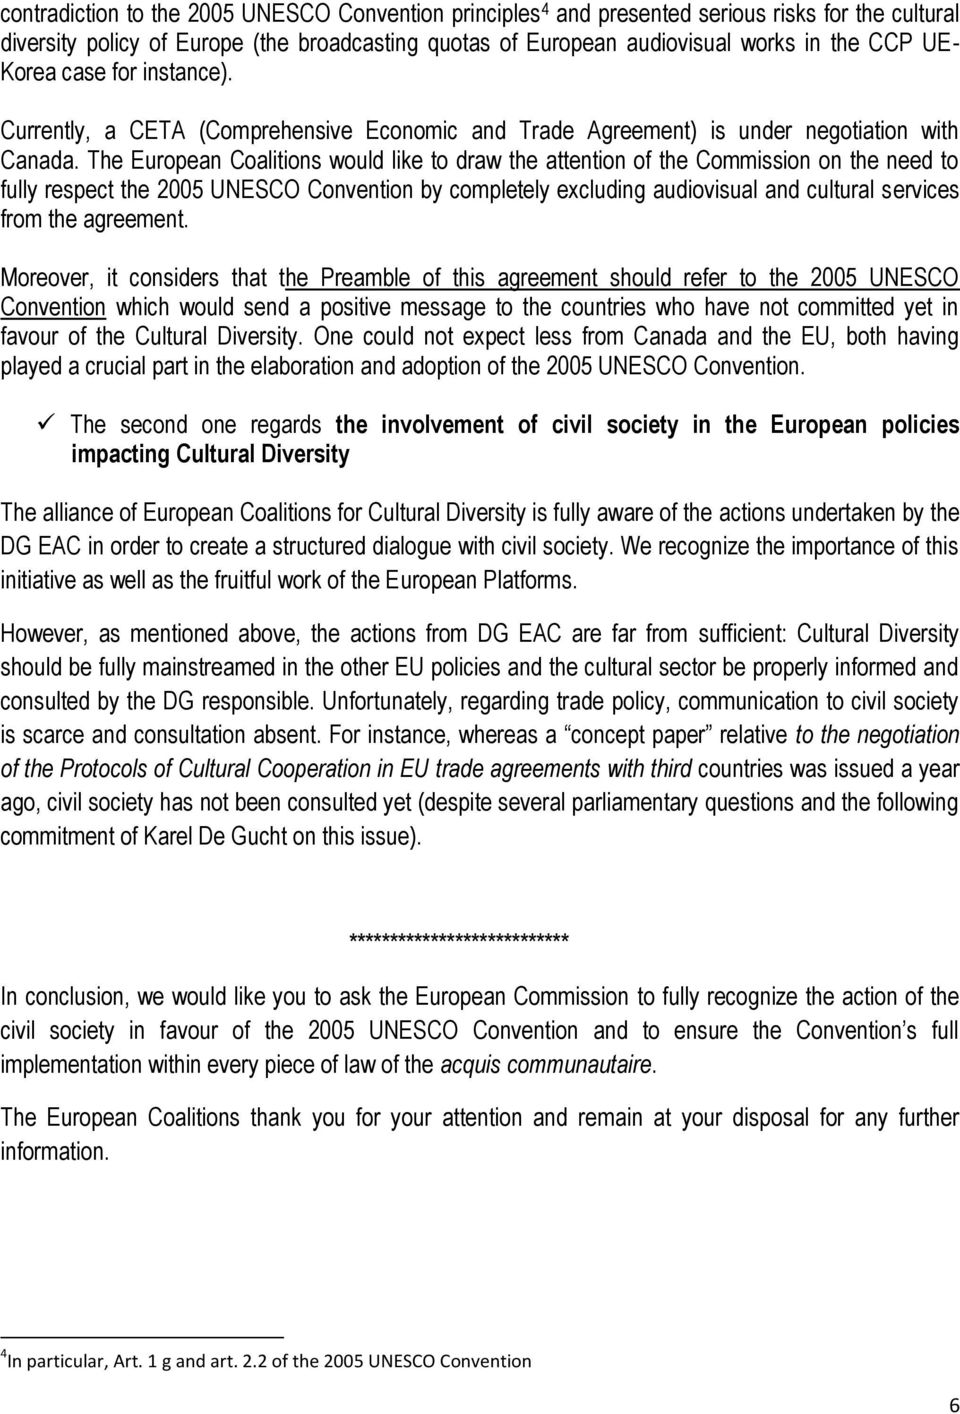 The European Coalitions would like to draw the attention of the Commission on the need to fully respect the 2005 UNESCO Convention by completely excluding audiovisual and cultural services from the